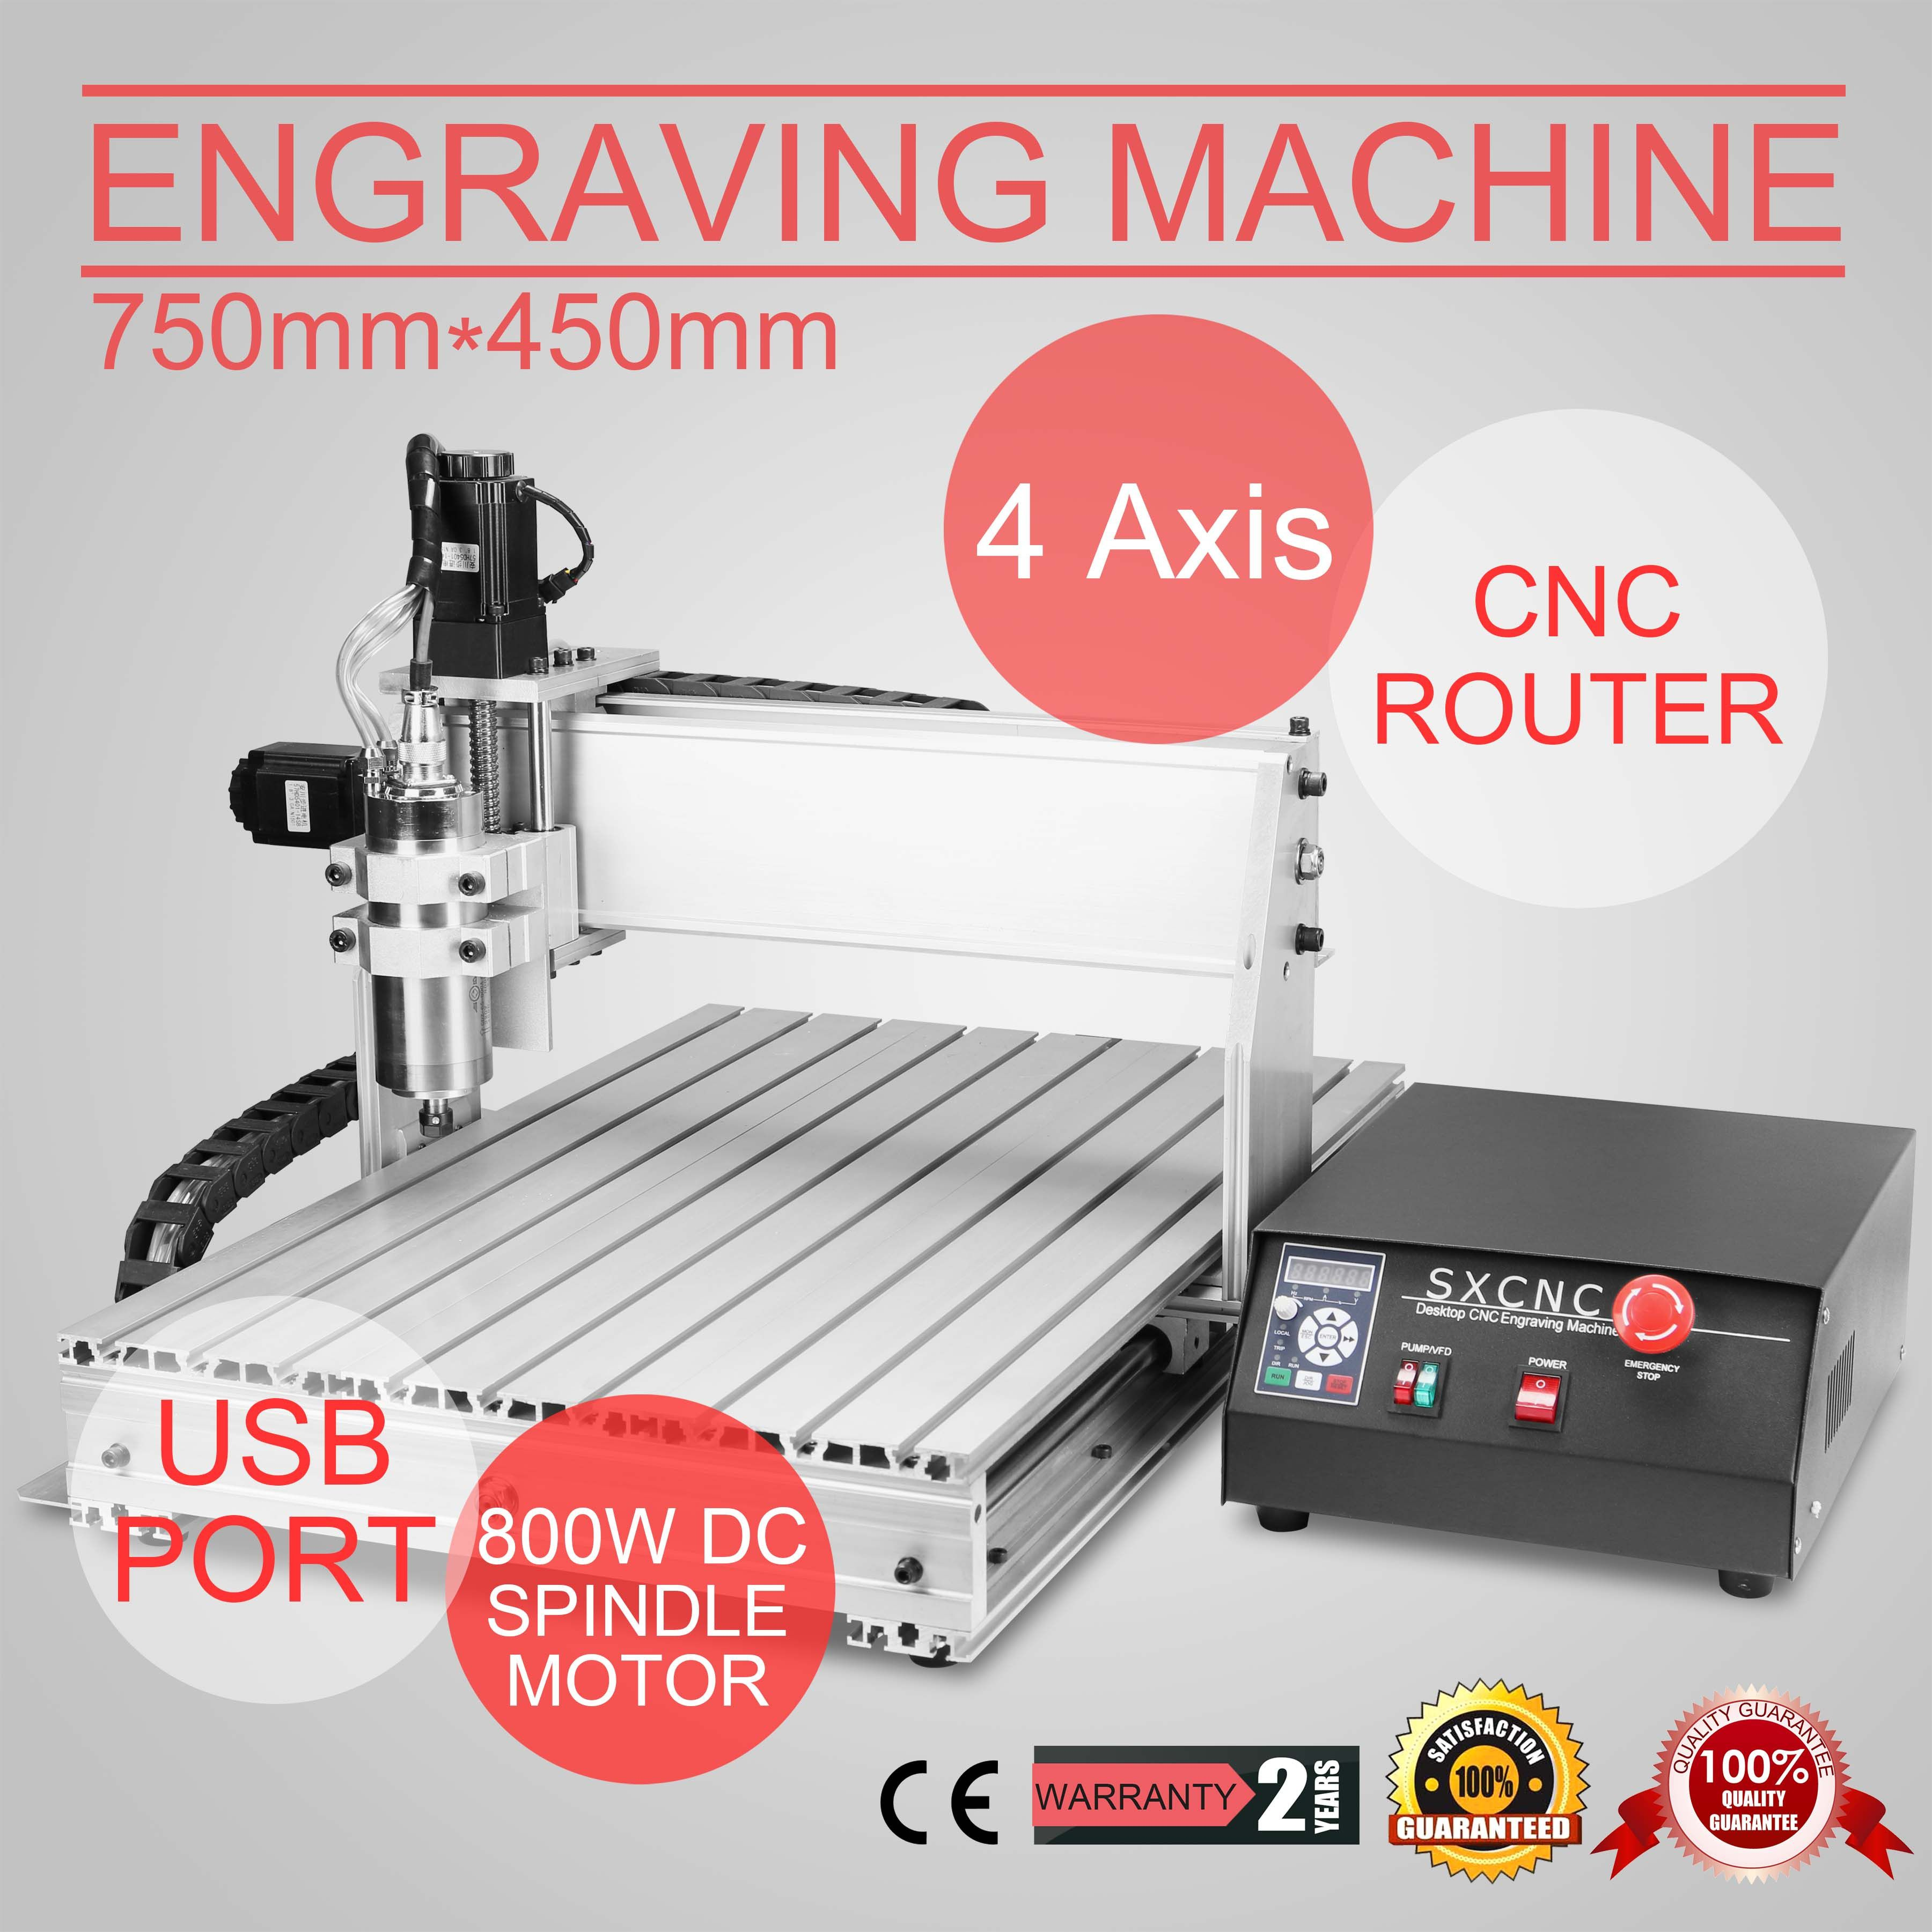 Cnc Router For Your Need Cnc Router Cnc Cnc Router